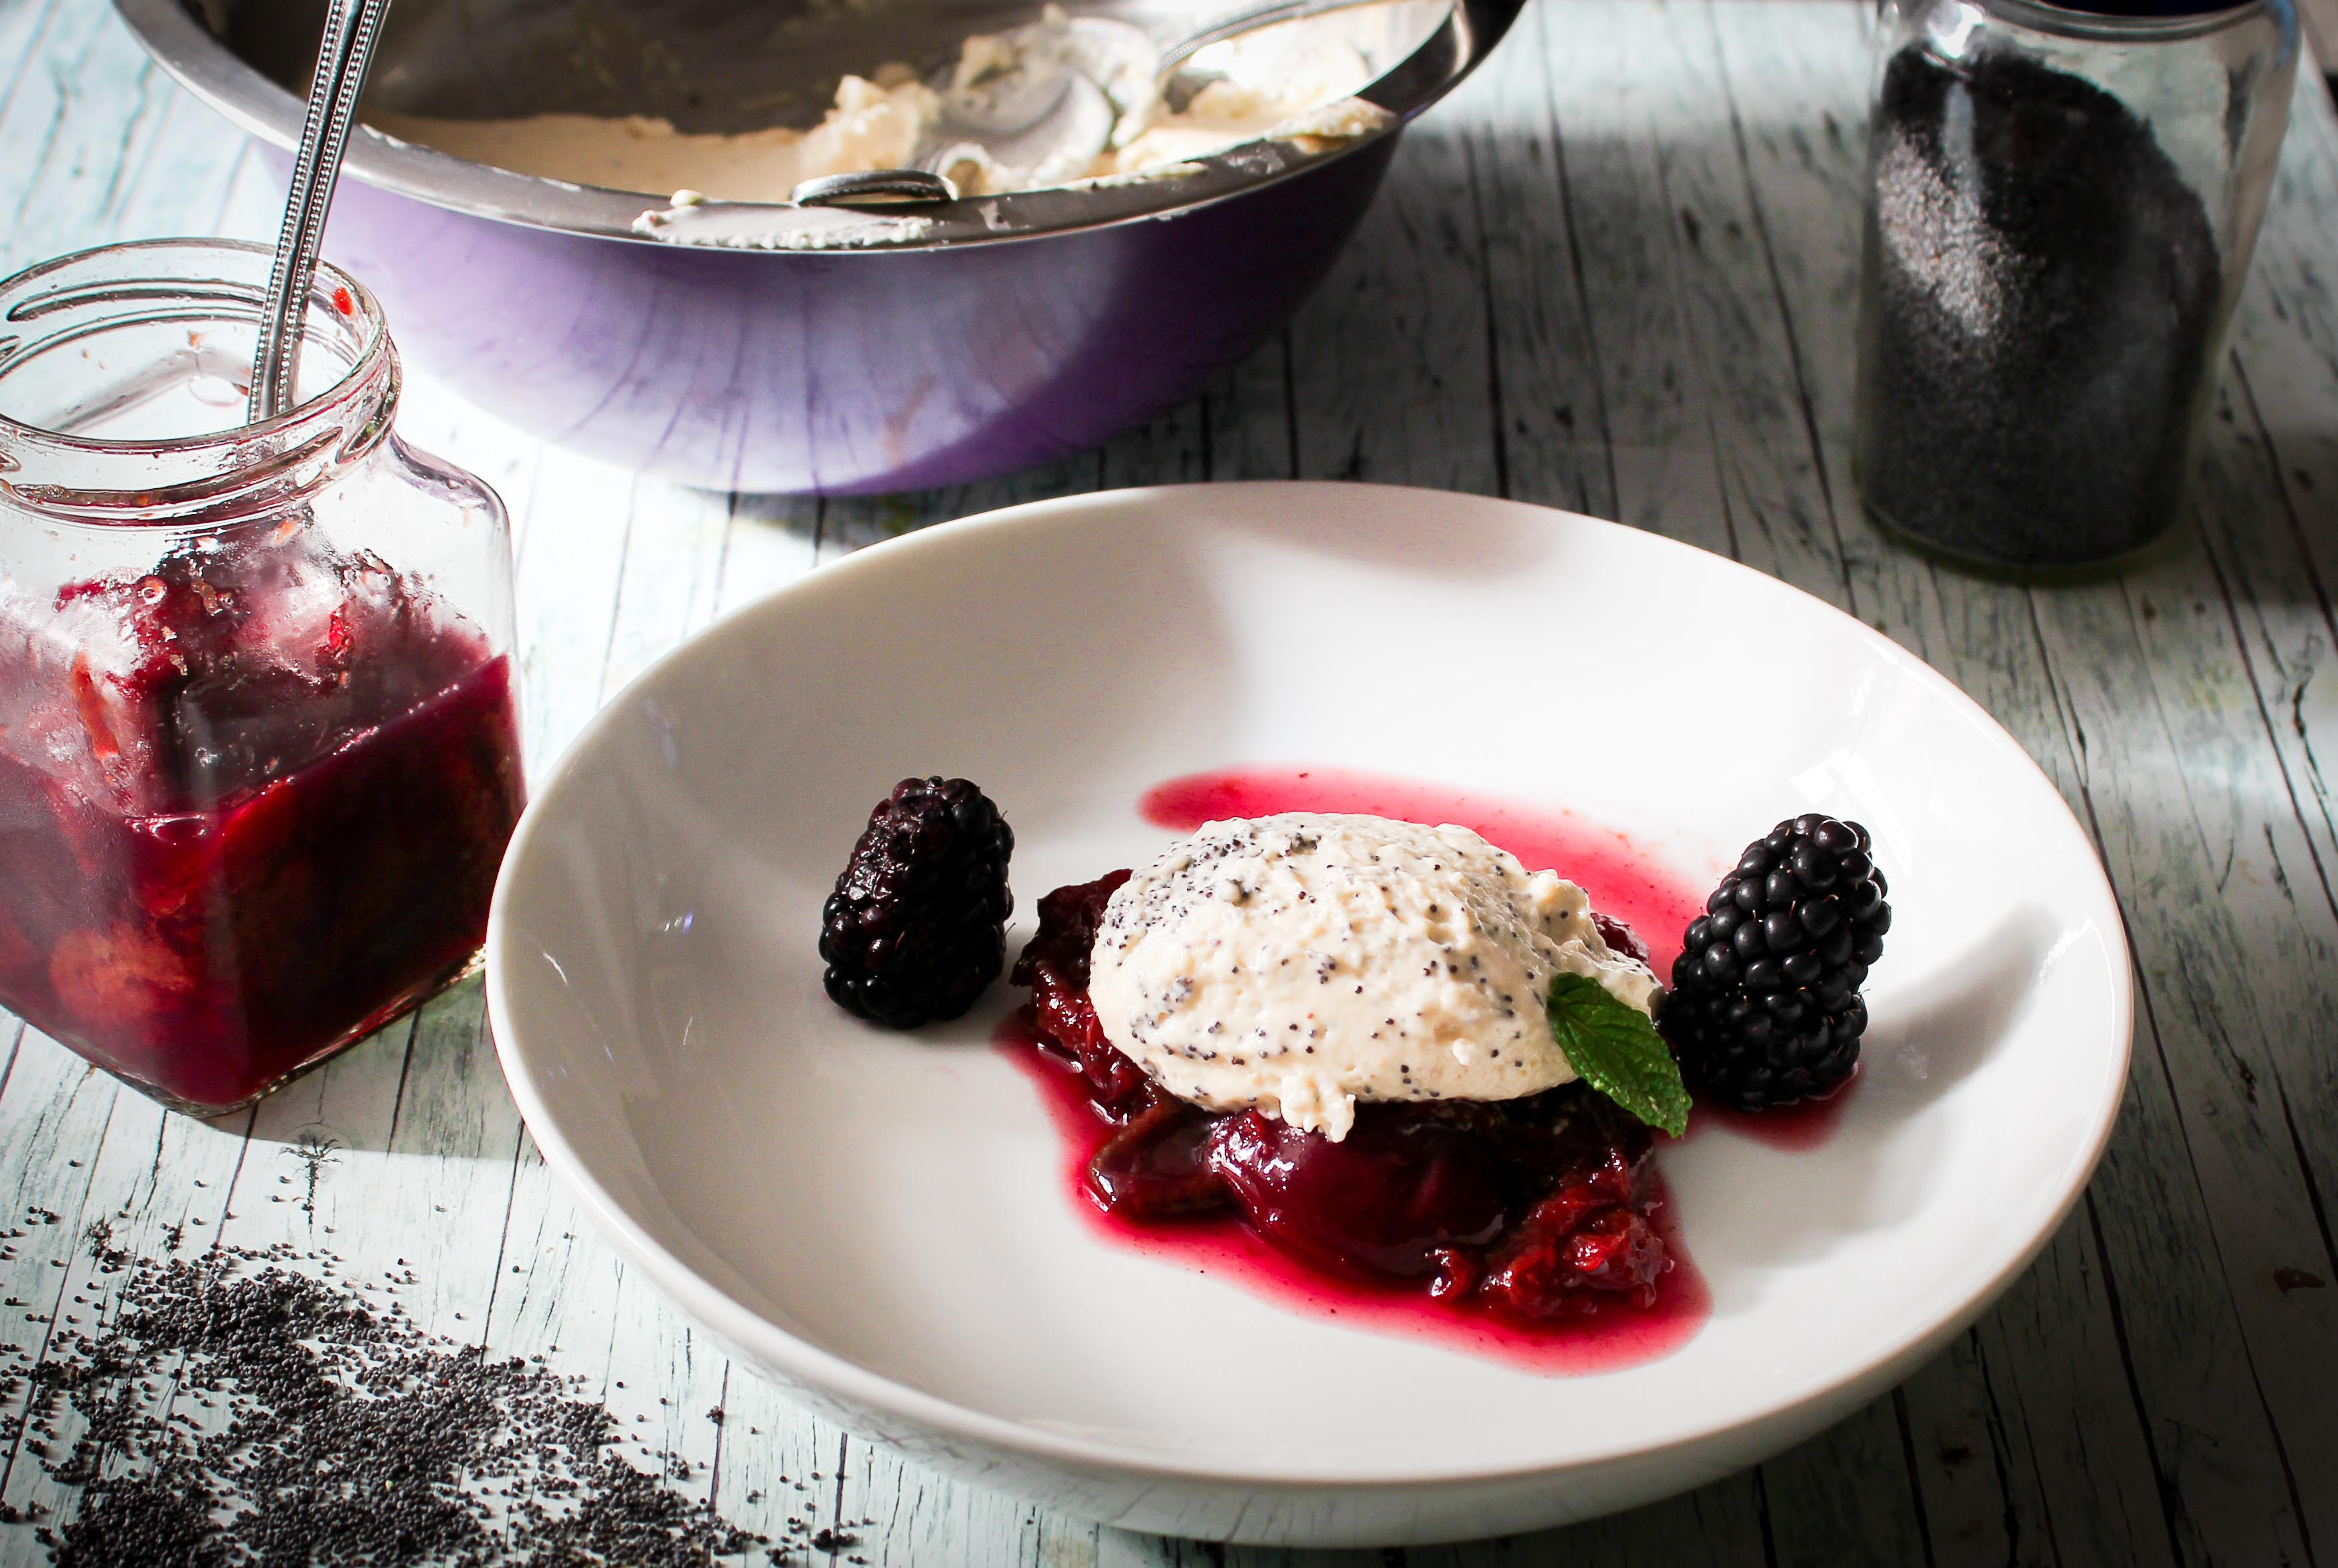 Dessert to prepare is white chocolate poppy seed mousse with red wine plums